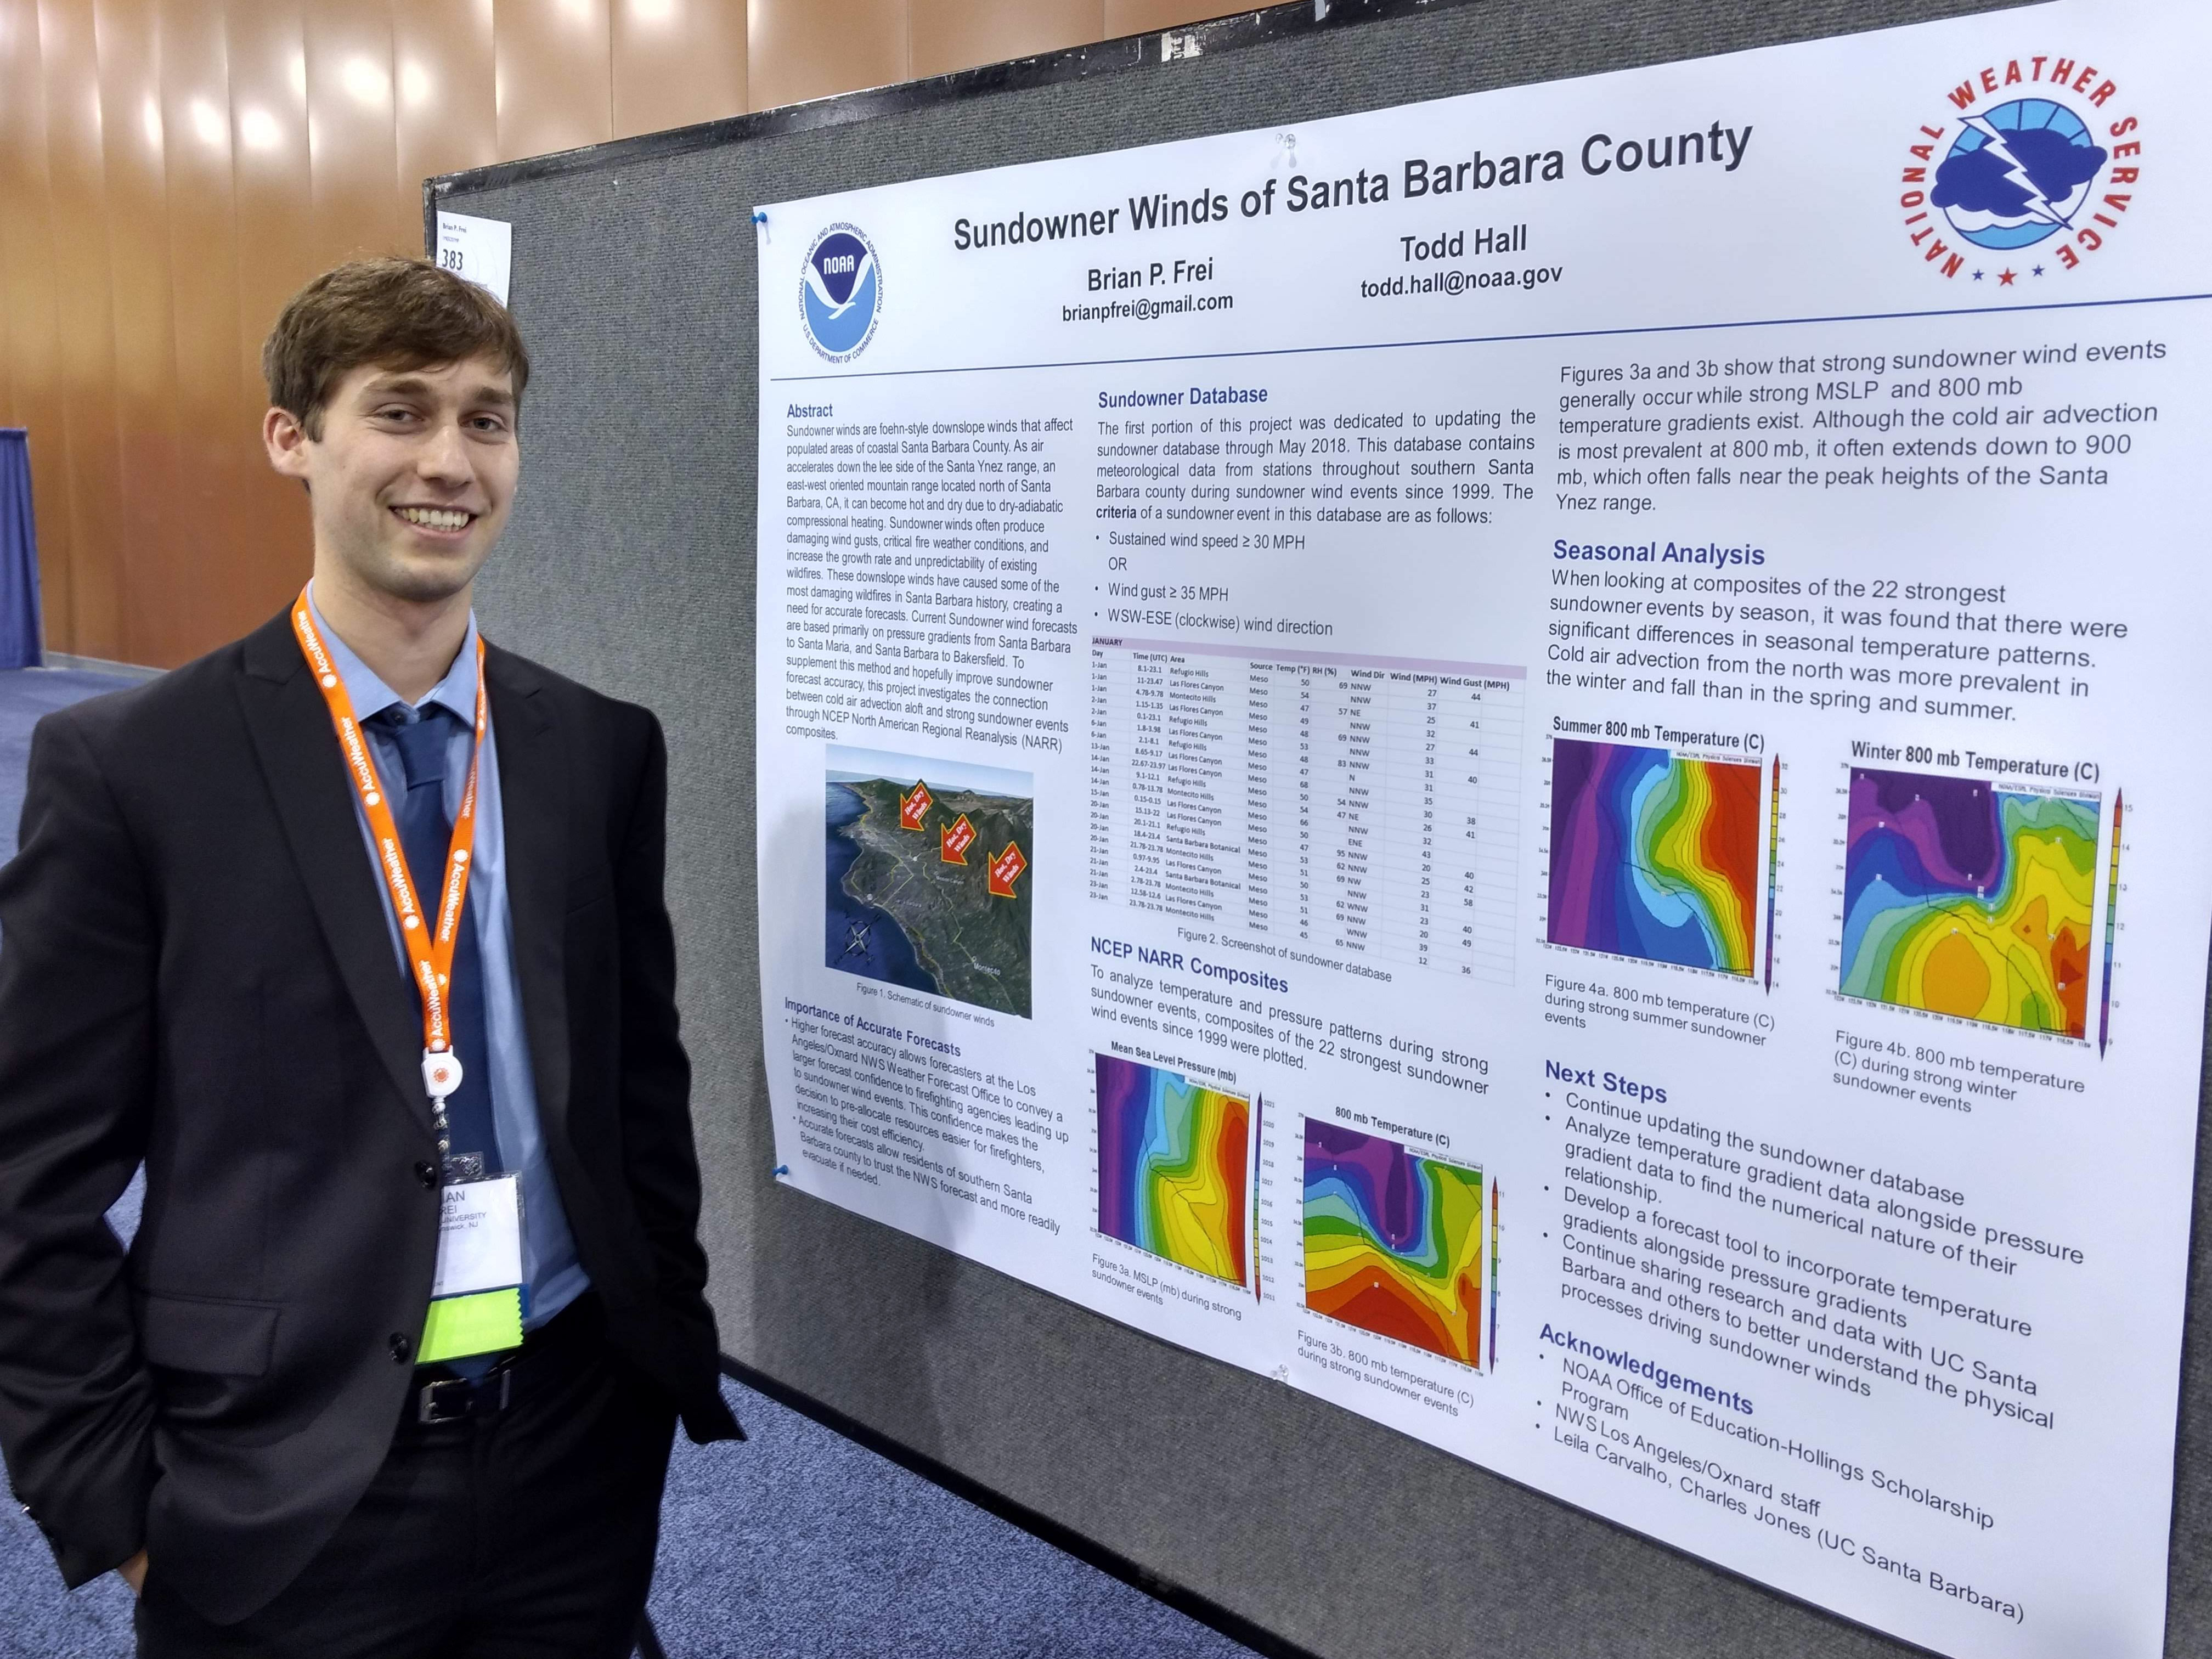 99th Annual Meeting of the American Meteorological Society